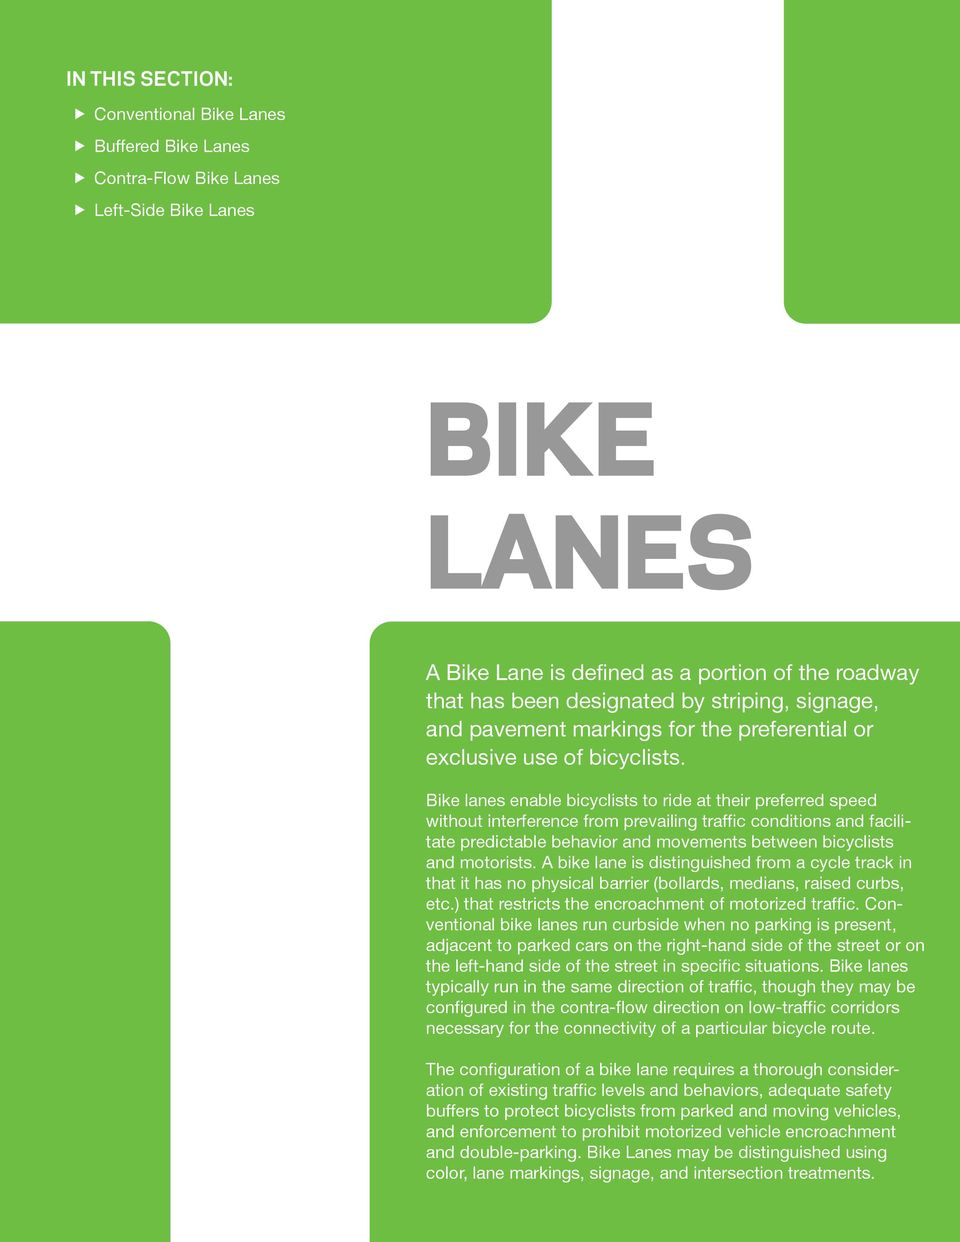 Bike lanes enable bicyclists to ride at their preferred speed without interference from prevailing traffic conditions and facilitate predictable behavior and movements between bicyclists and